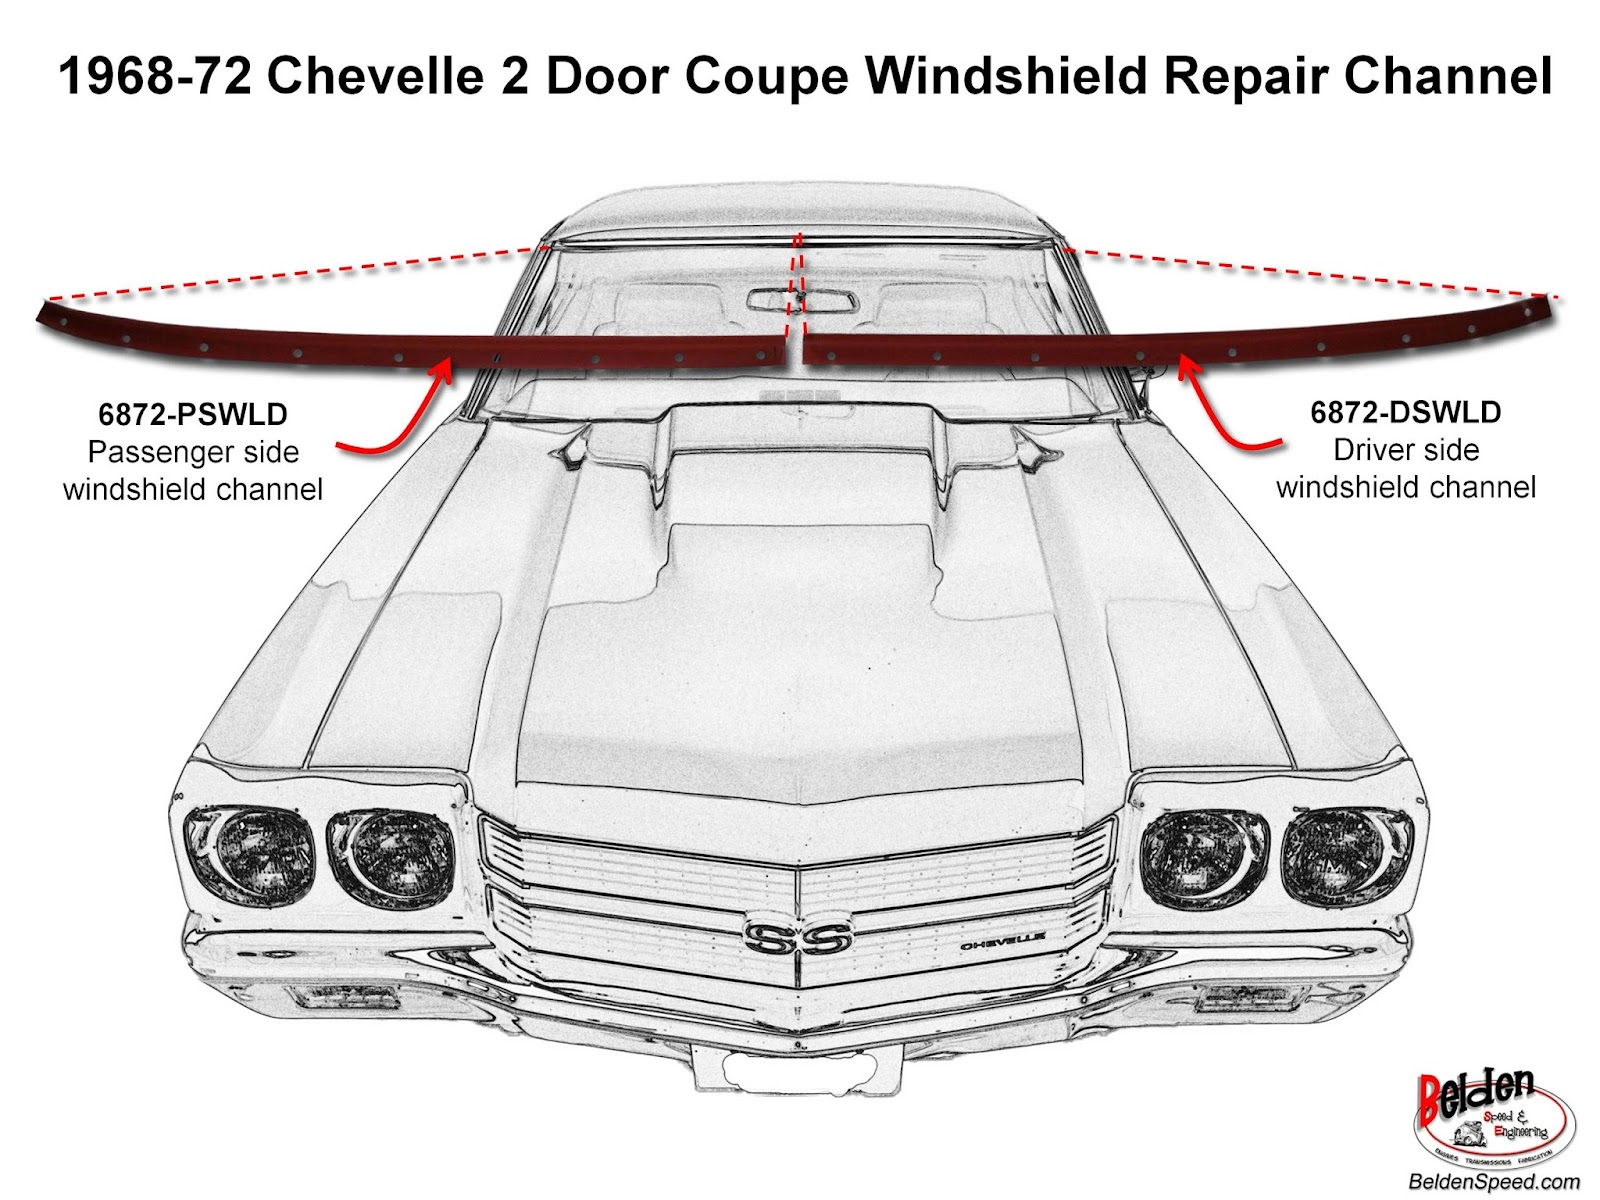 1972 Chevelle Window Rust Patch Panels And Channels